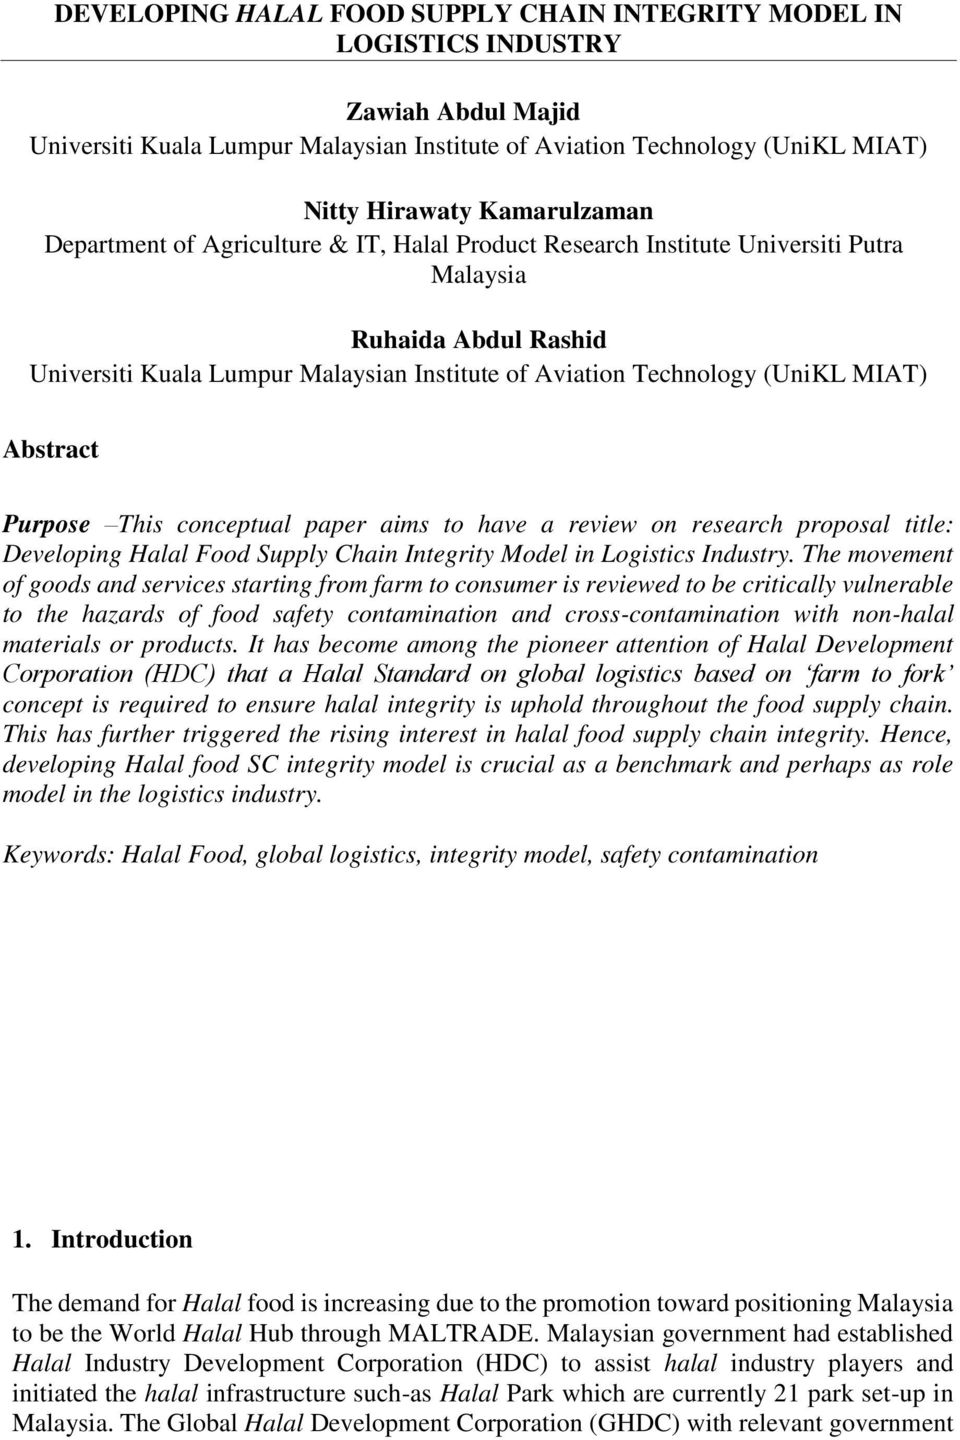 halal and haram issues in food and beverages essay Free essays on halal   the islamic principles pertaining to halal and haram the question of what ought to be halal (lawful) and haram  certifications sought by food and beverage industry players are iso 22000, safe quality food, the international food standard,.